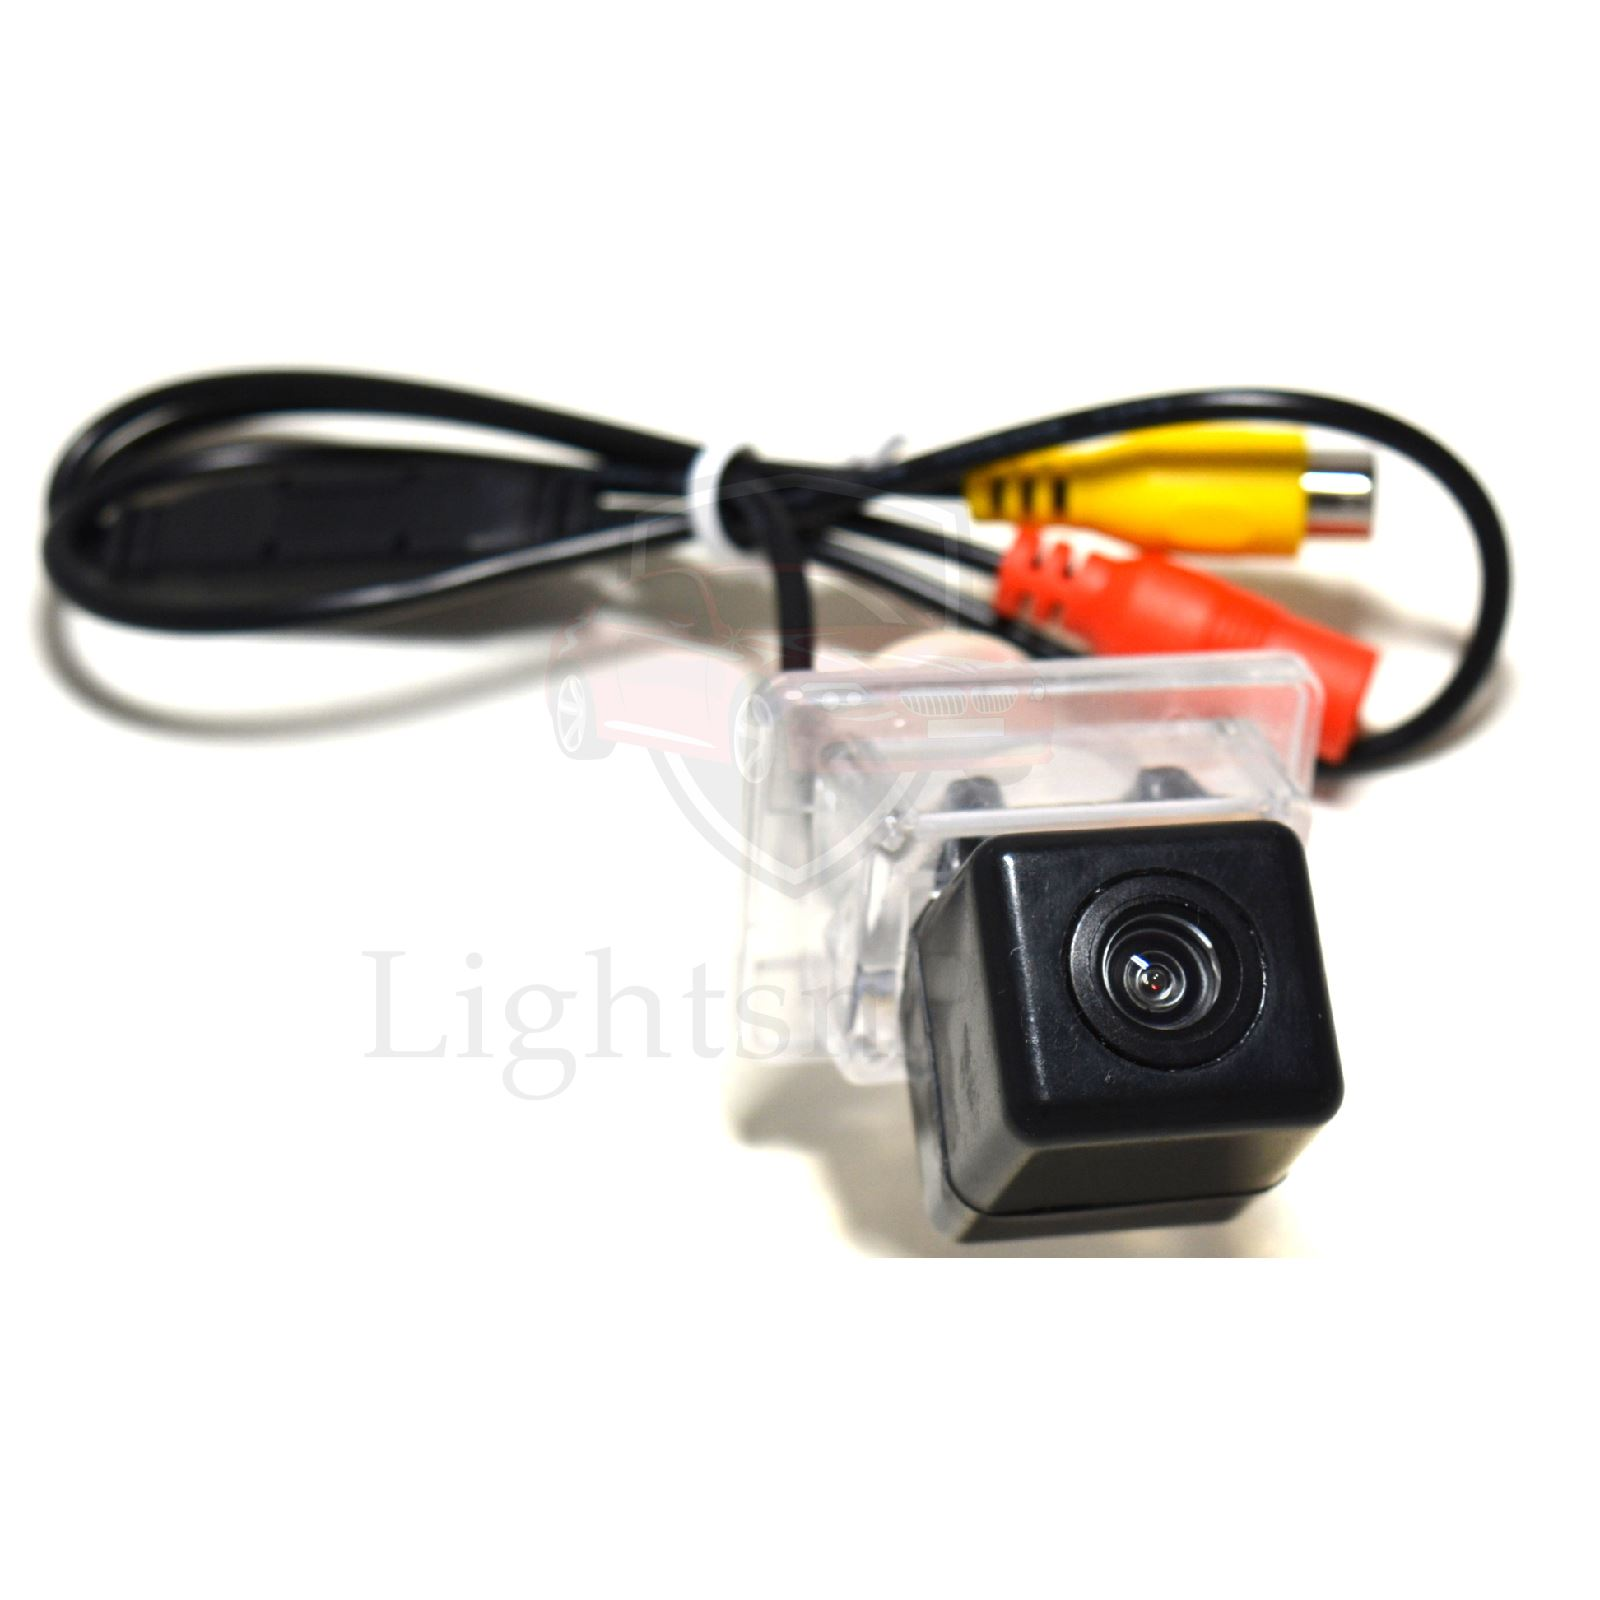 Details about Bespoke Car Rear View Backup Reversing Camera Kit for  Mercedes-Benz S Class W221